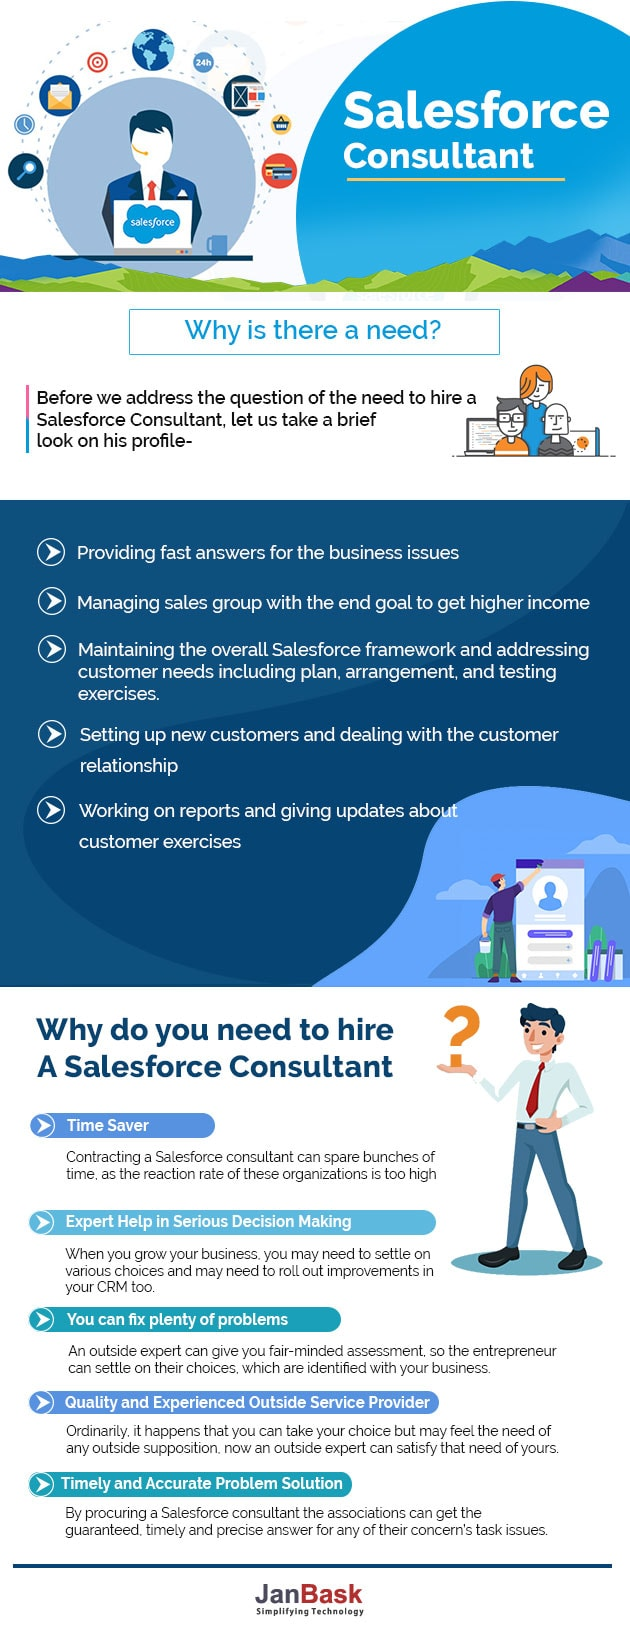 Infographic Salesforce Consultant- Why is there a need?